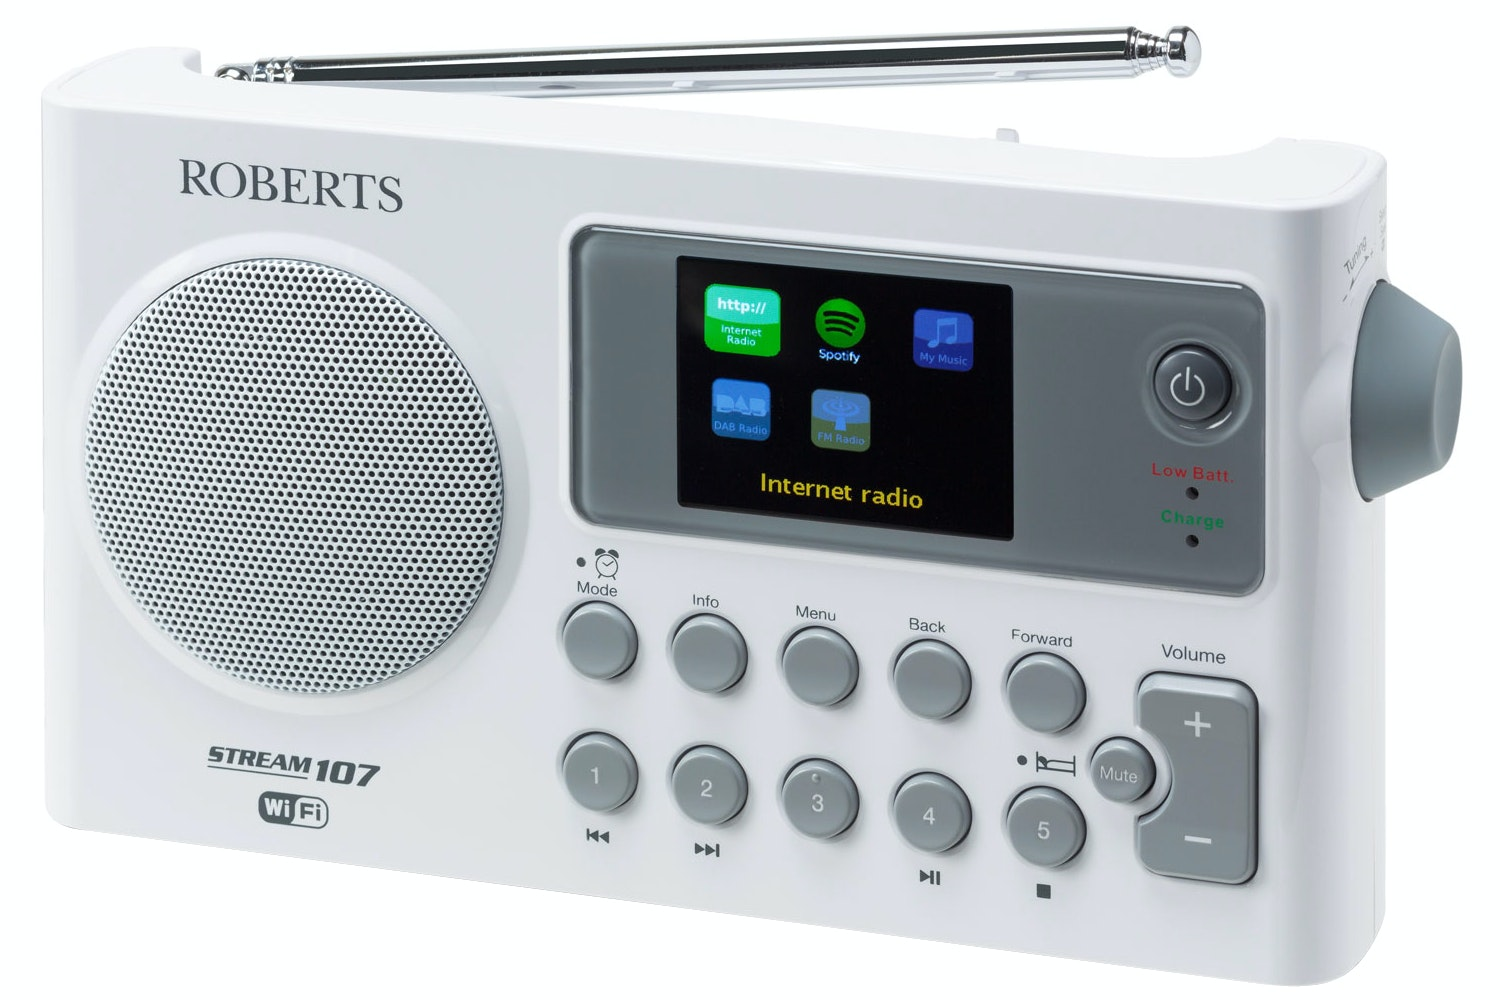 Roberts Stream107 DAB/DAB+/FM/Internet Smart Radio | White